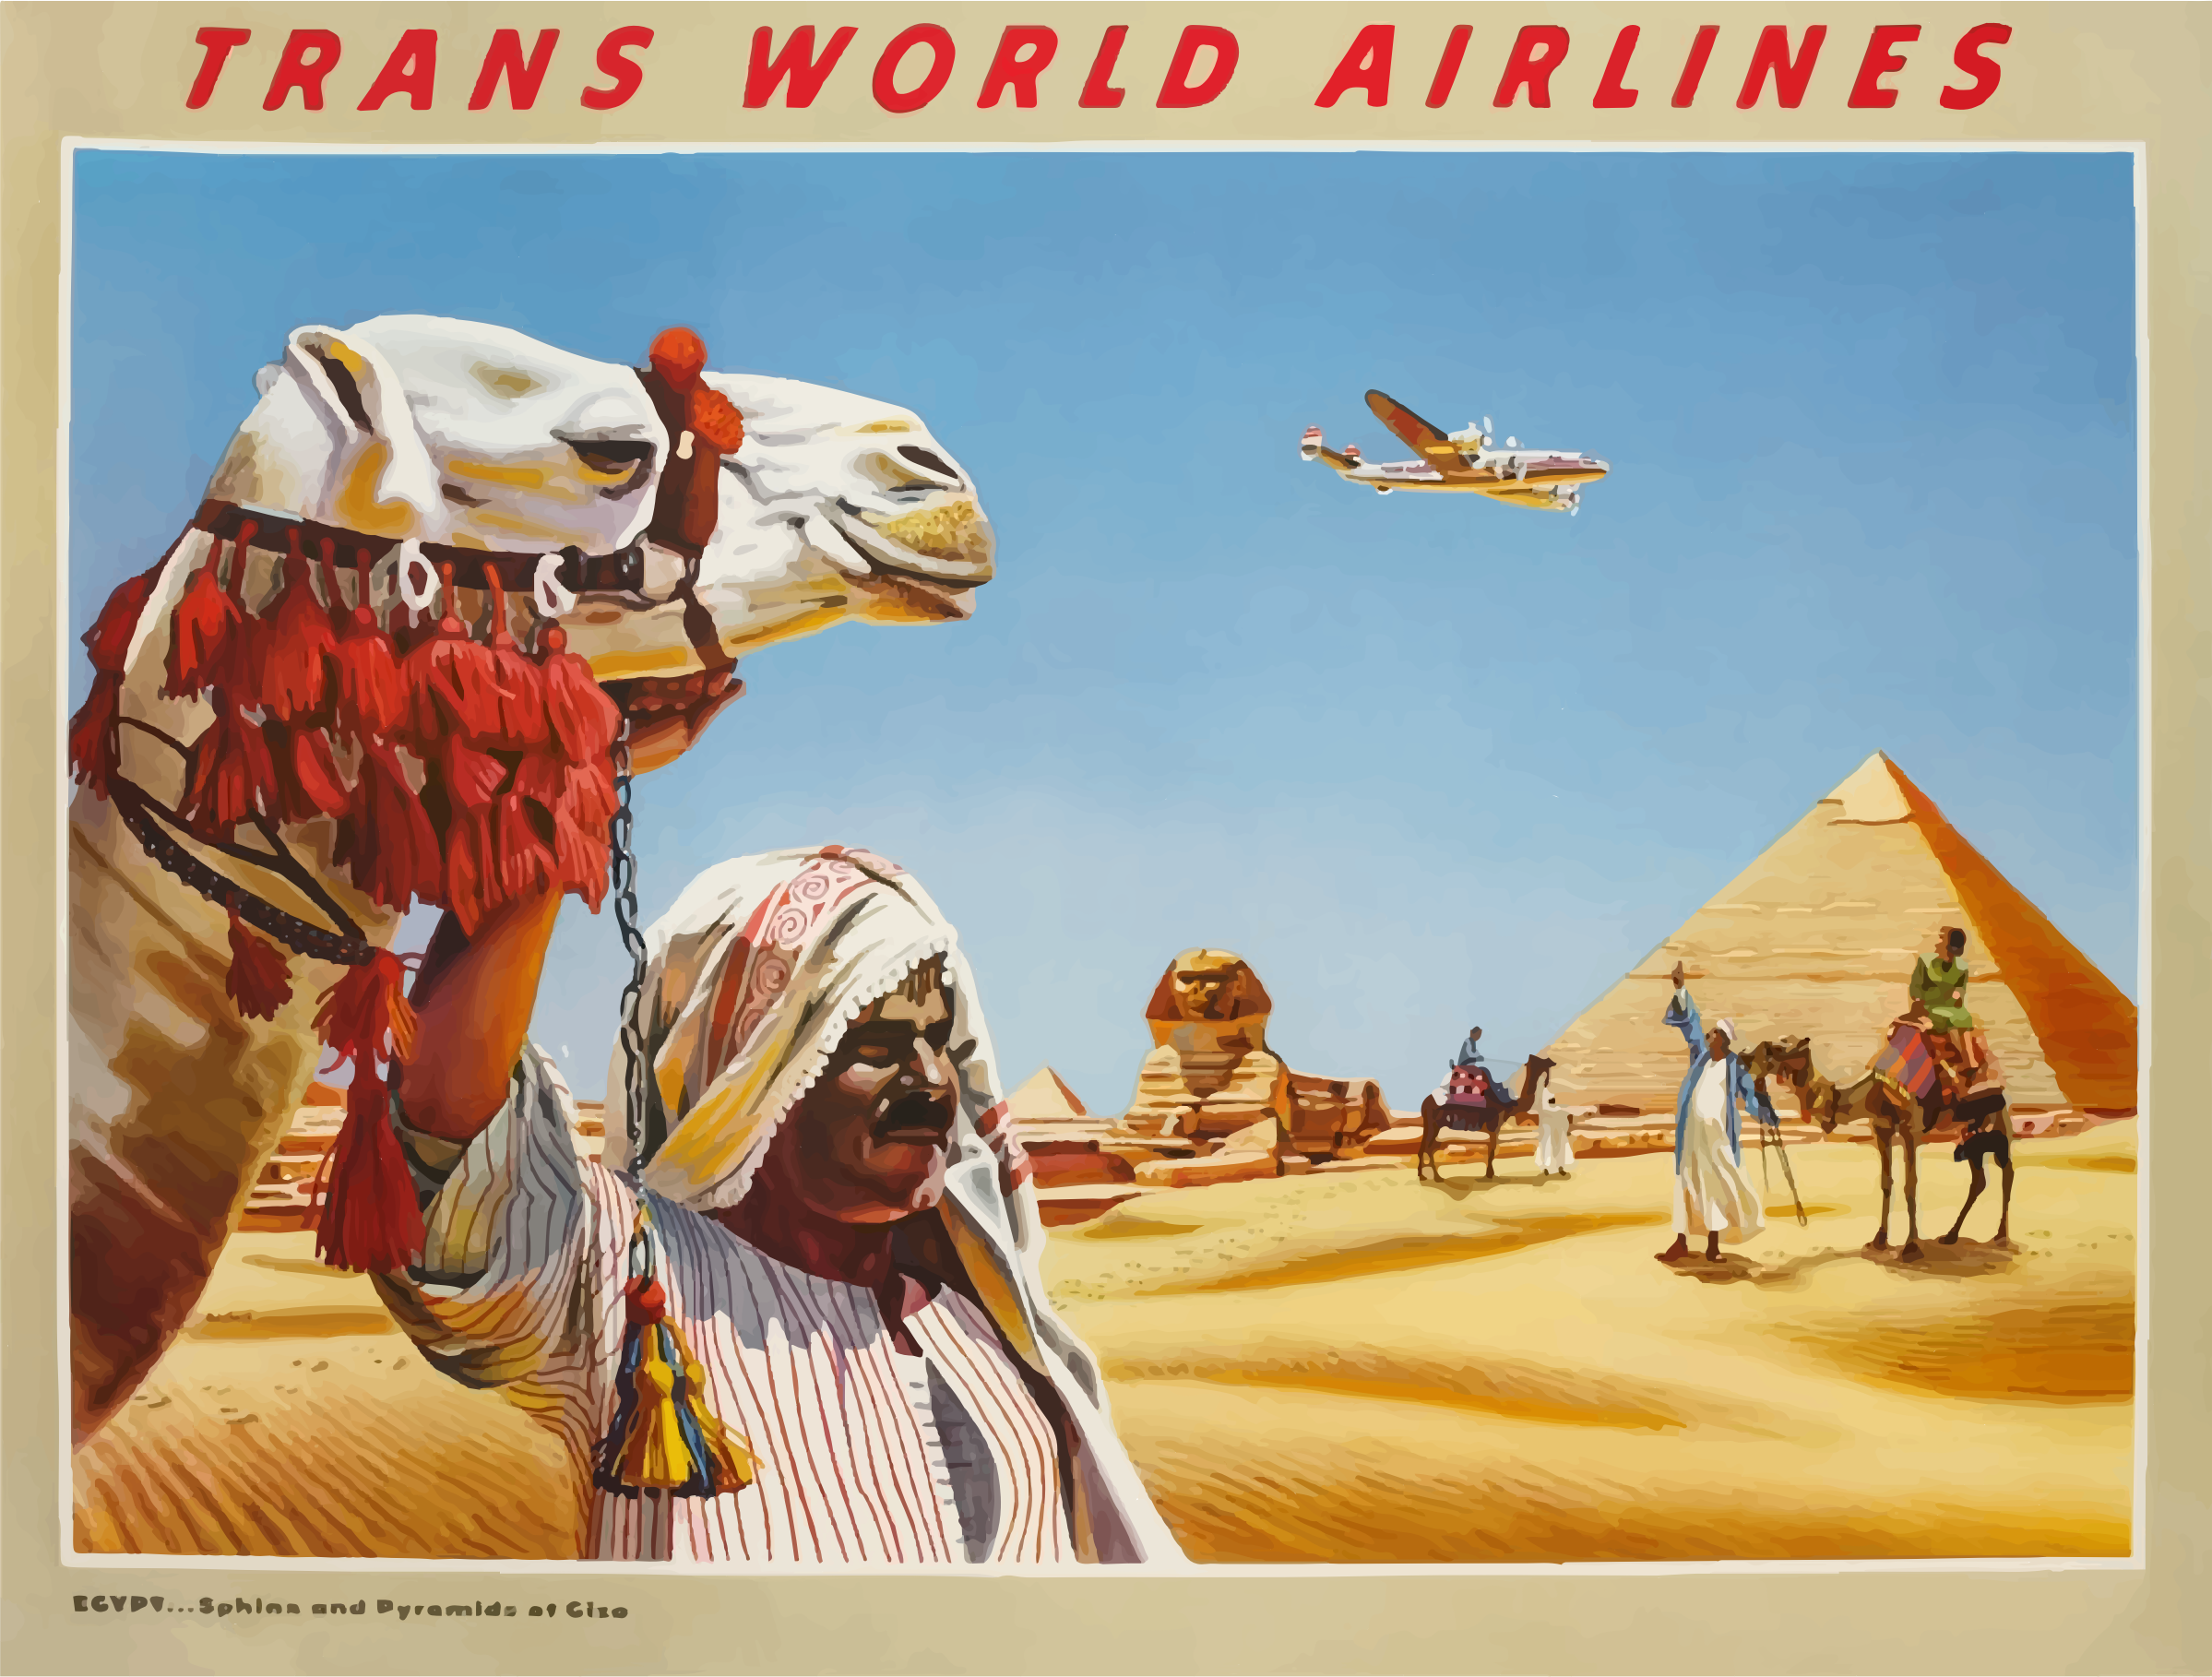 Vintage Travel Poster Egypt 3 by GDJ